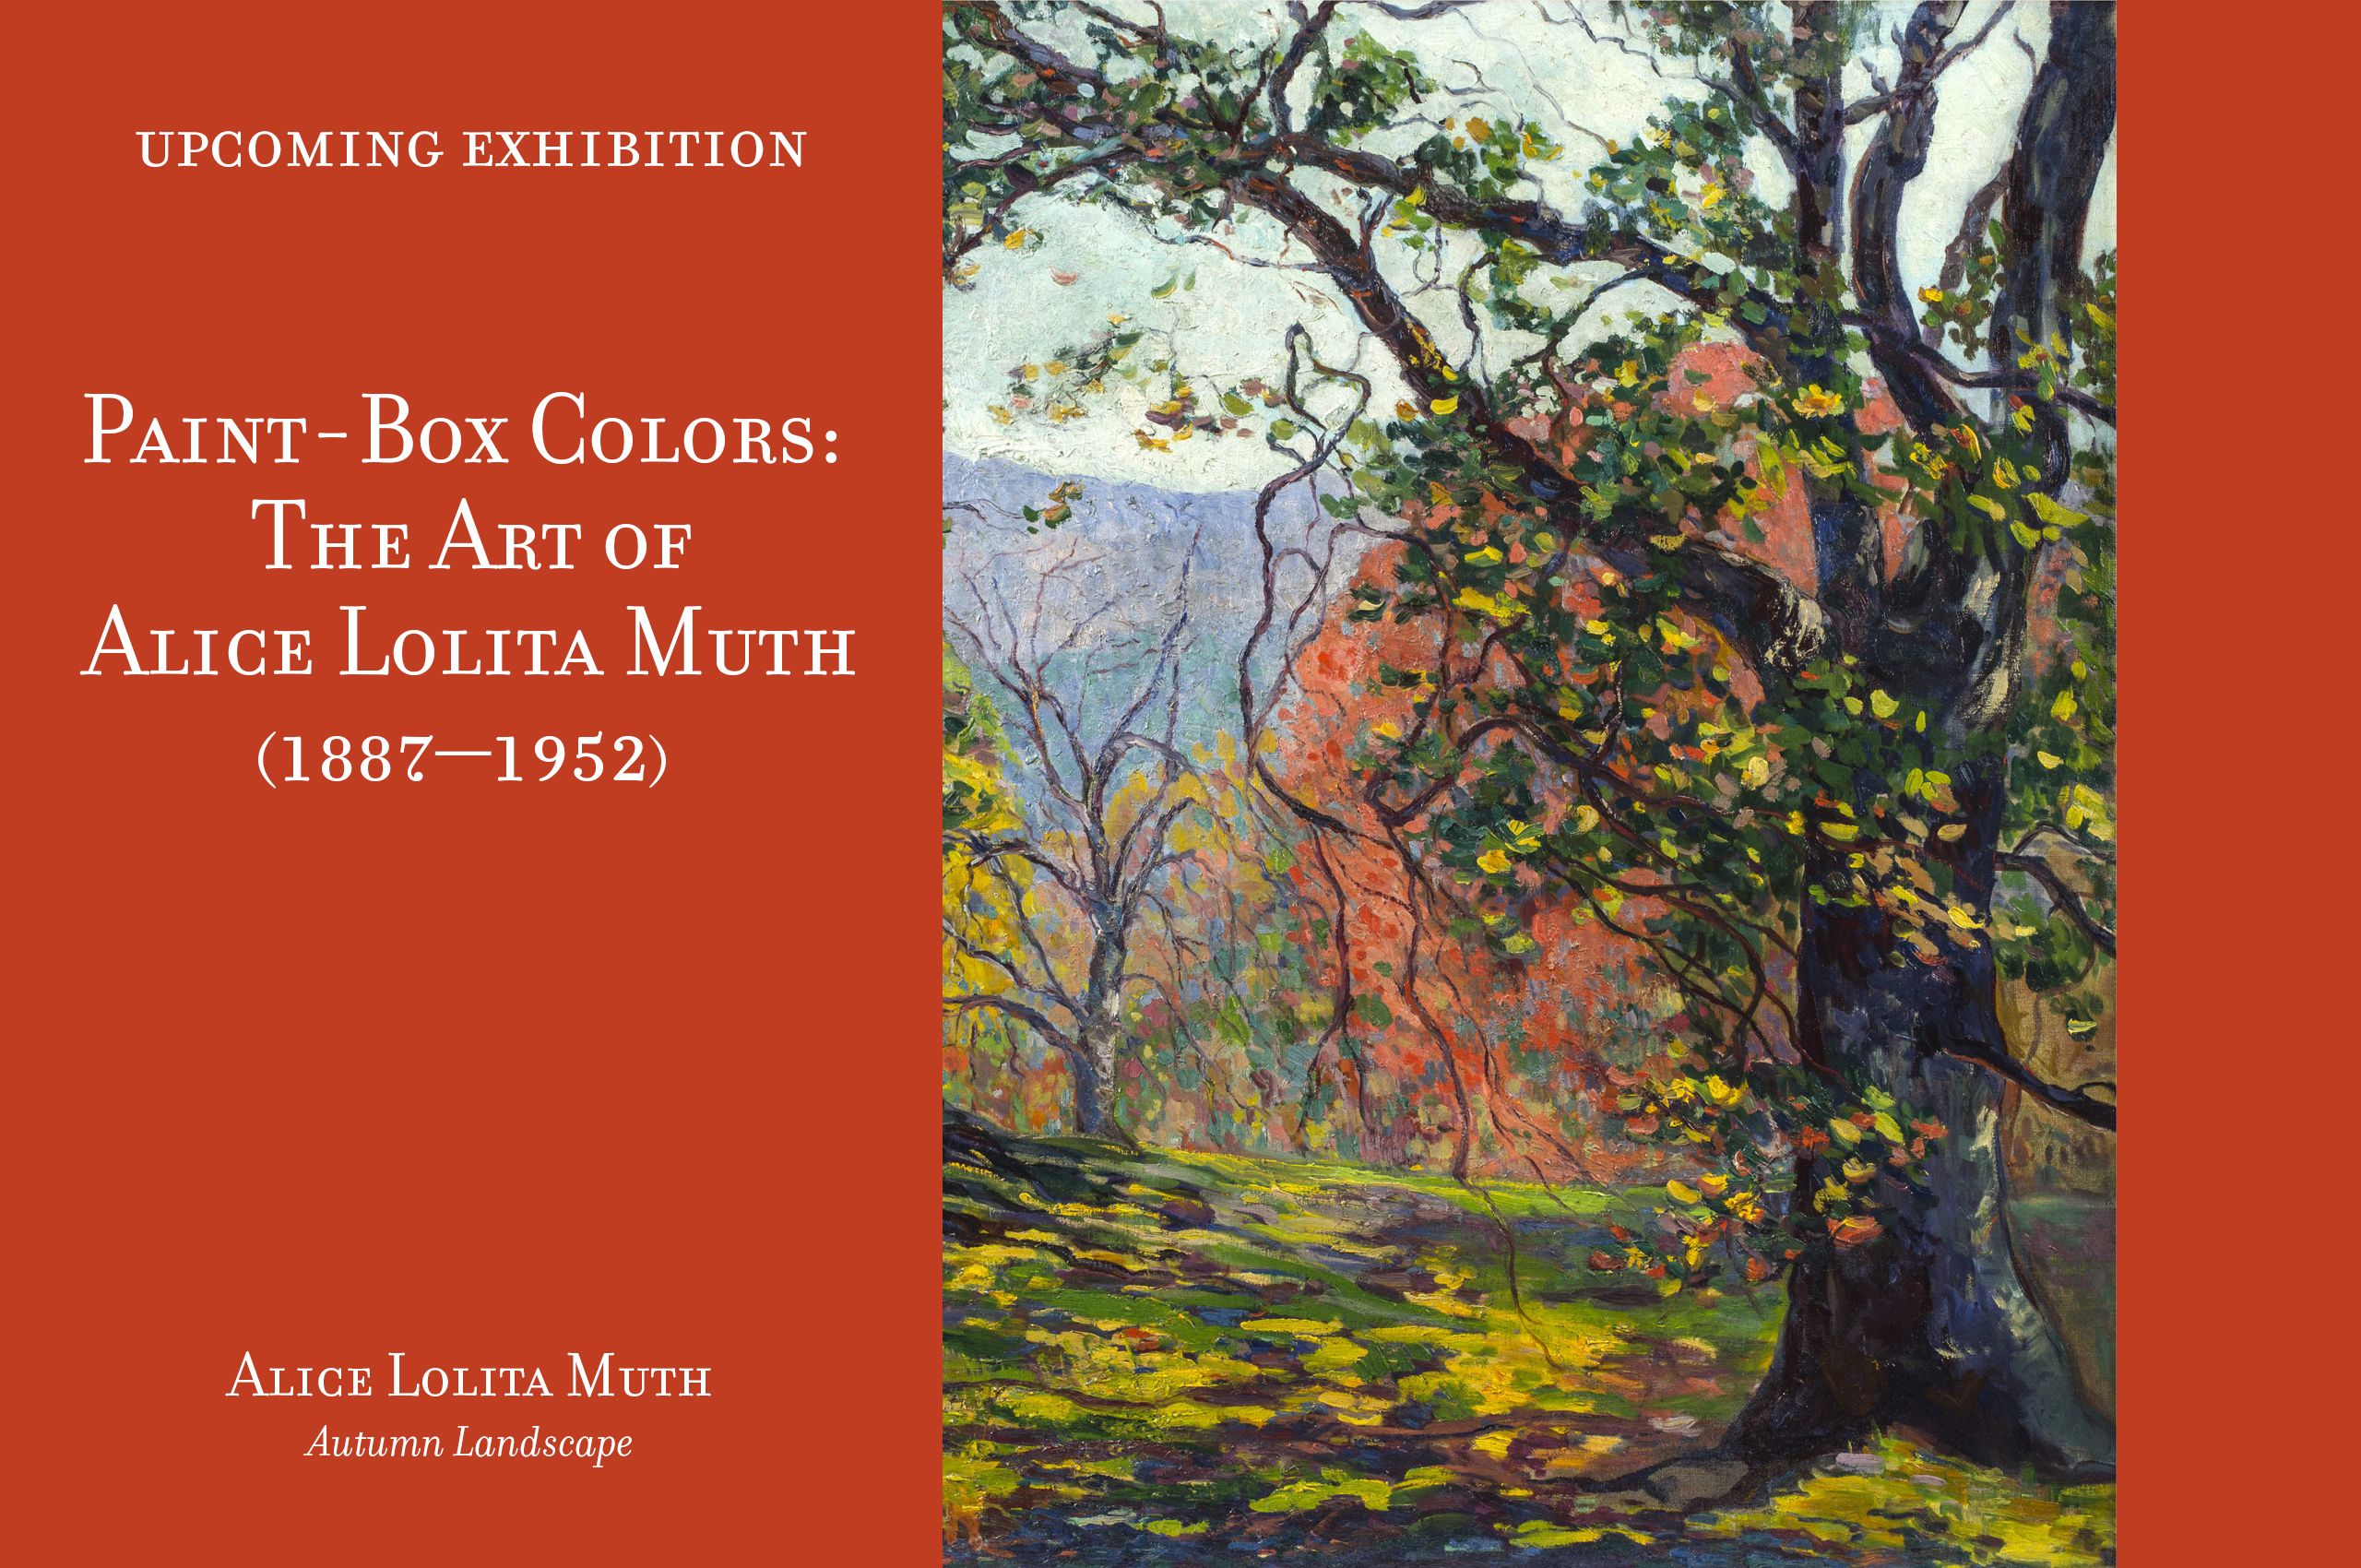 Paint-Box Colors: The Art of Alice Lolita Muth (1887-1952)